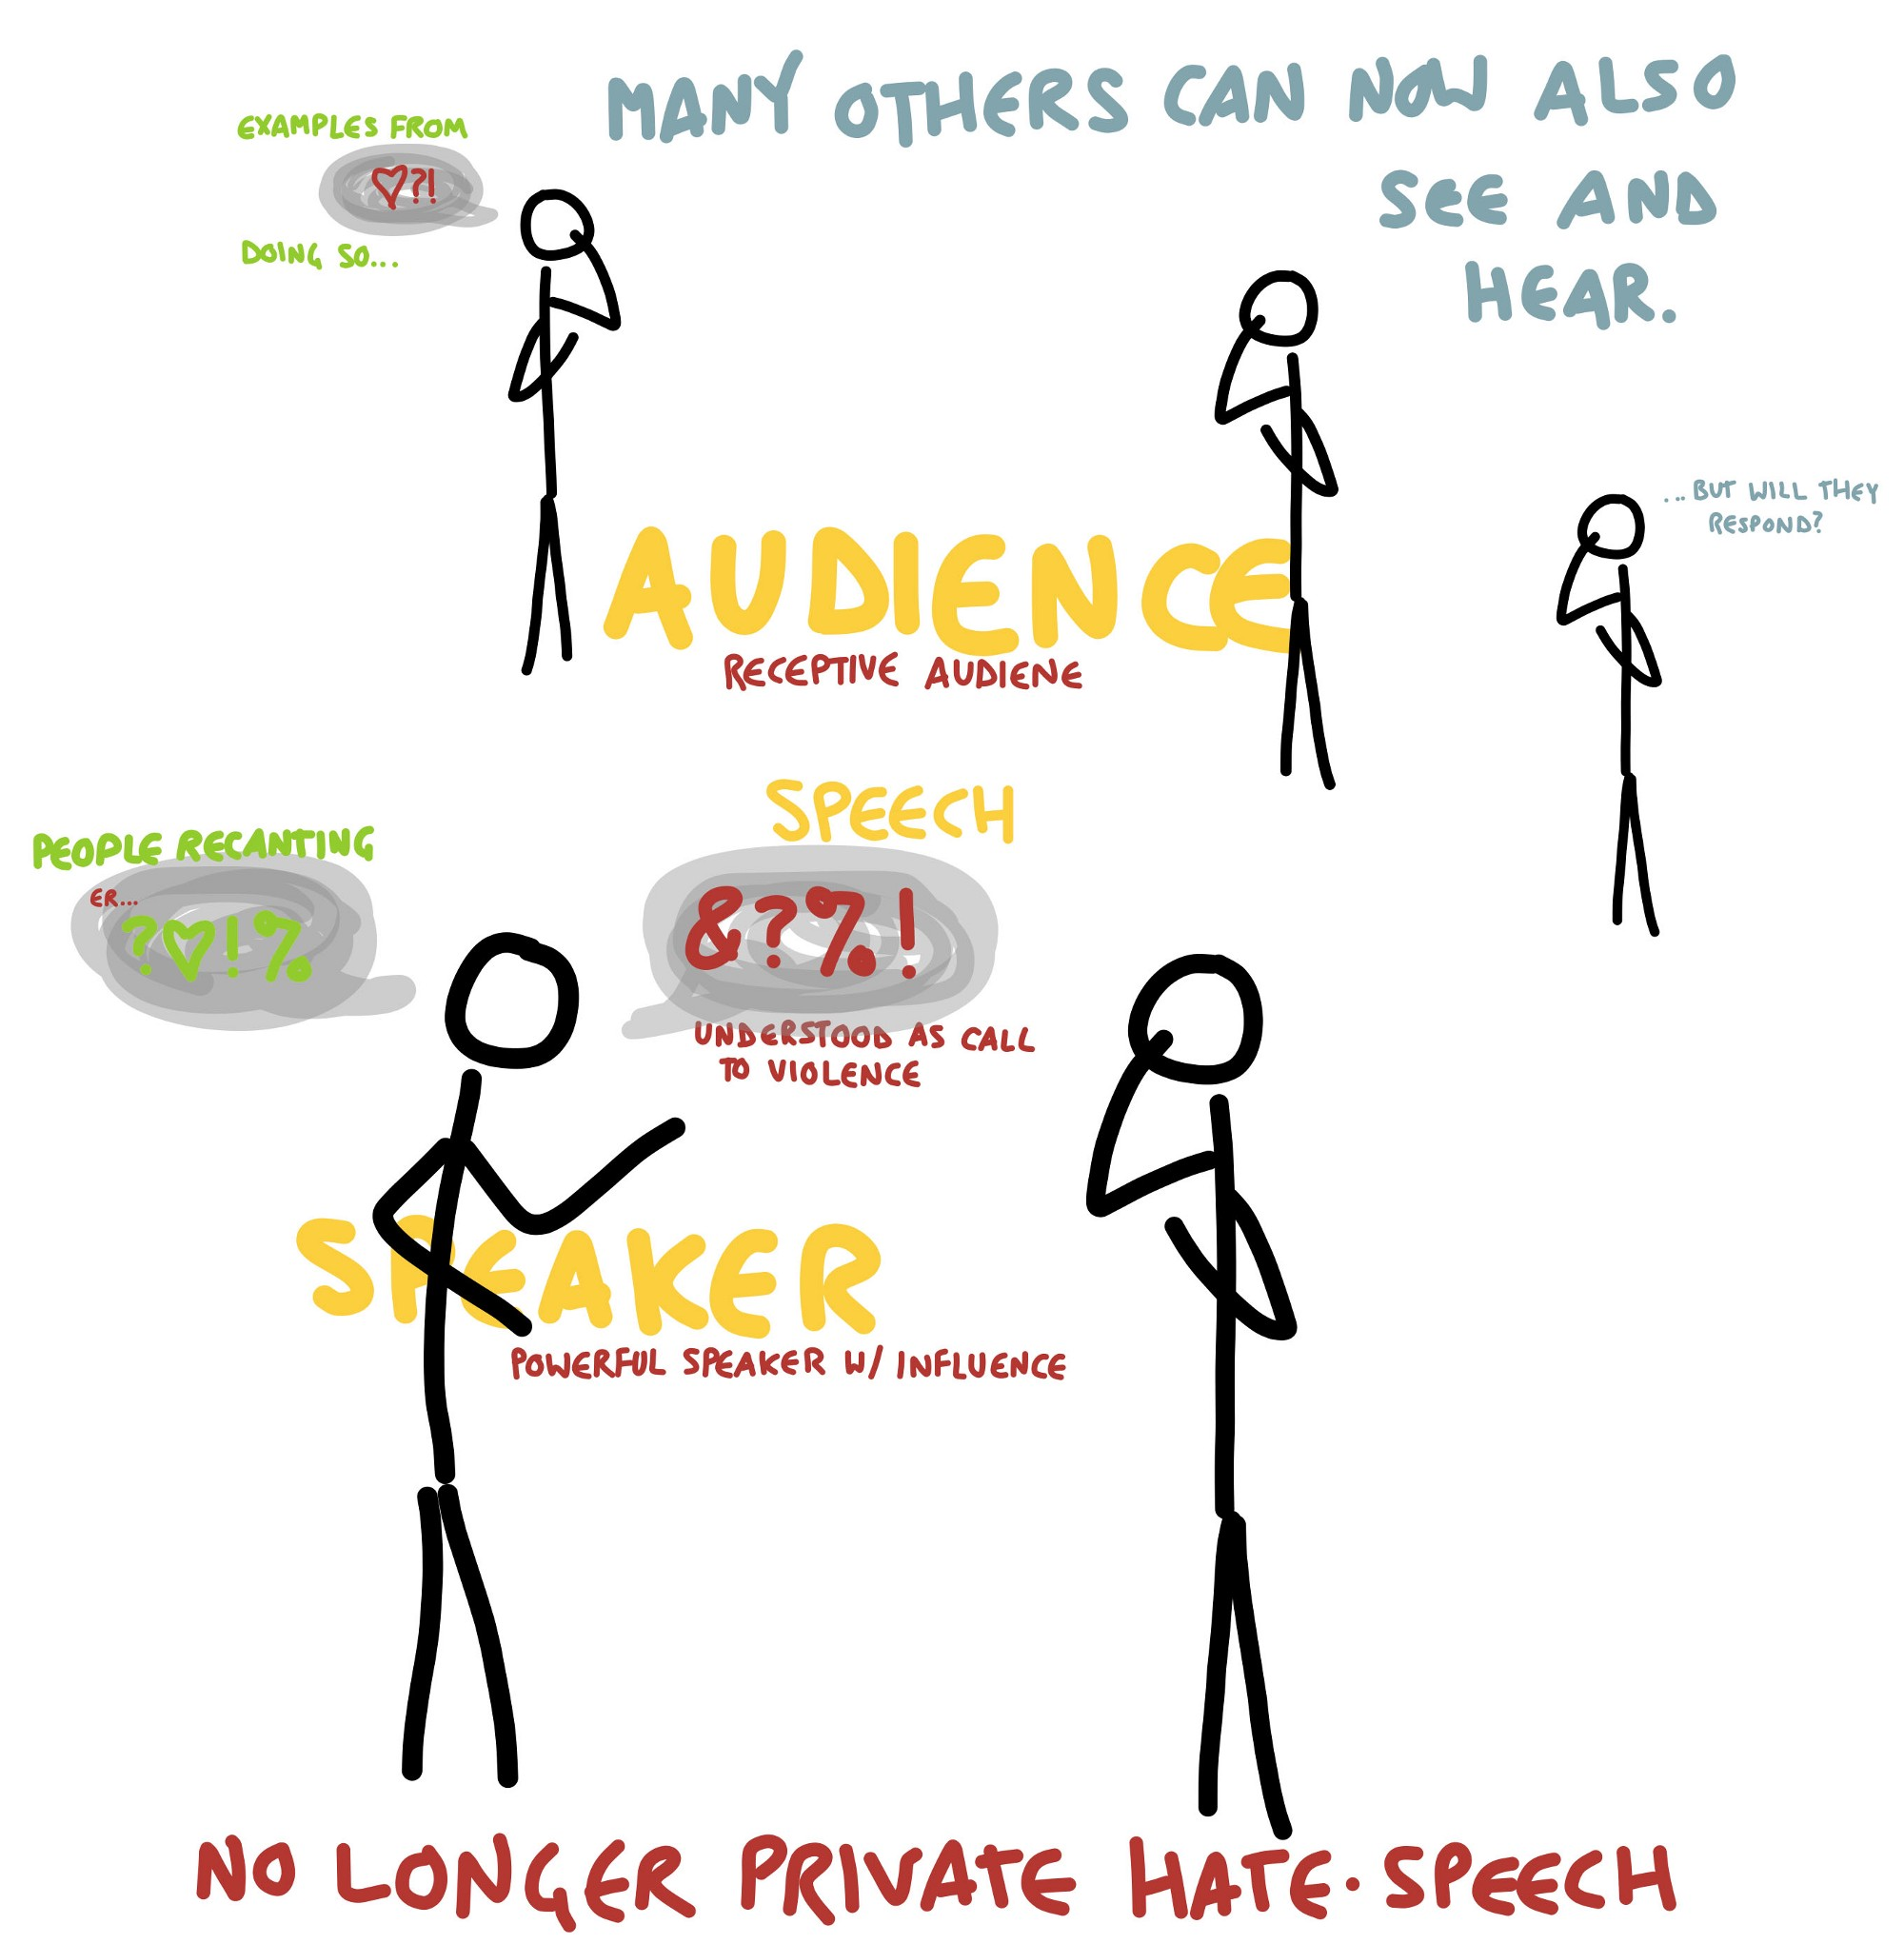 flower speech new responses to hatred online internet monitor  illustration by willow brugh willowbl00